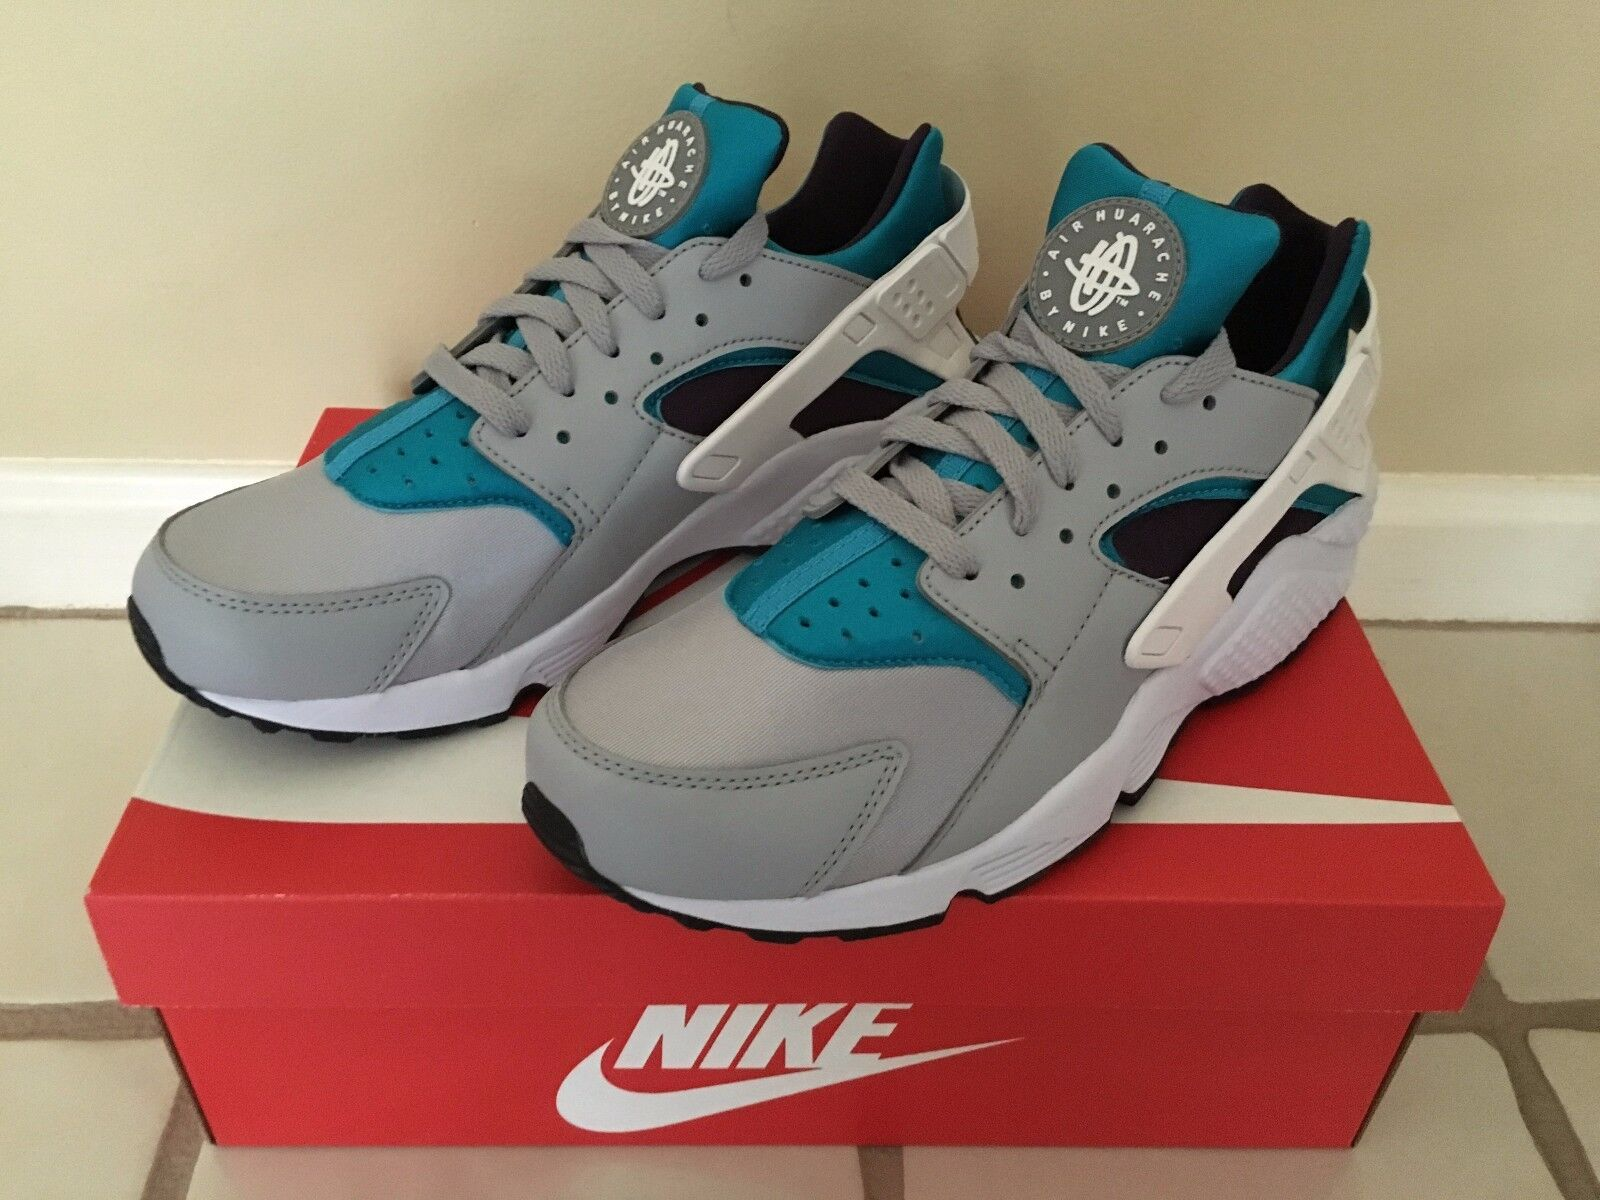 NIKE AIR HUARACHE SNEAKERS SIZE 11 318429024 BRAND NEW BEST OFFER!